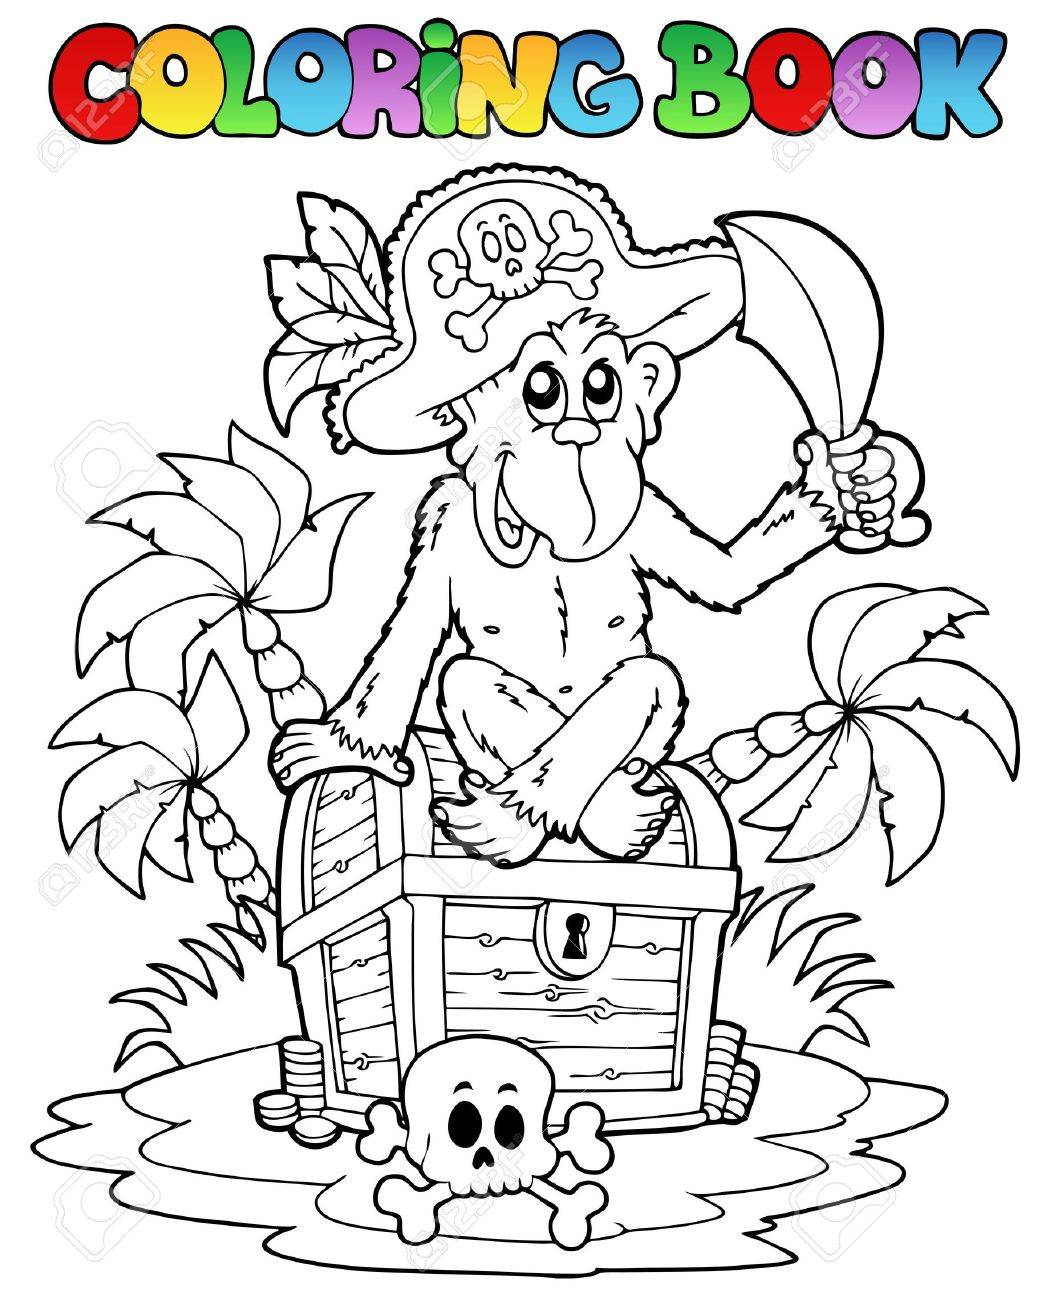 Coloring Book With Pirate Theme 3 - Vector Illustration Royalty ...